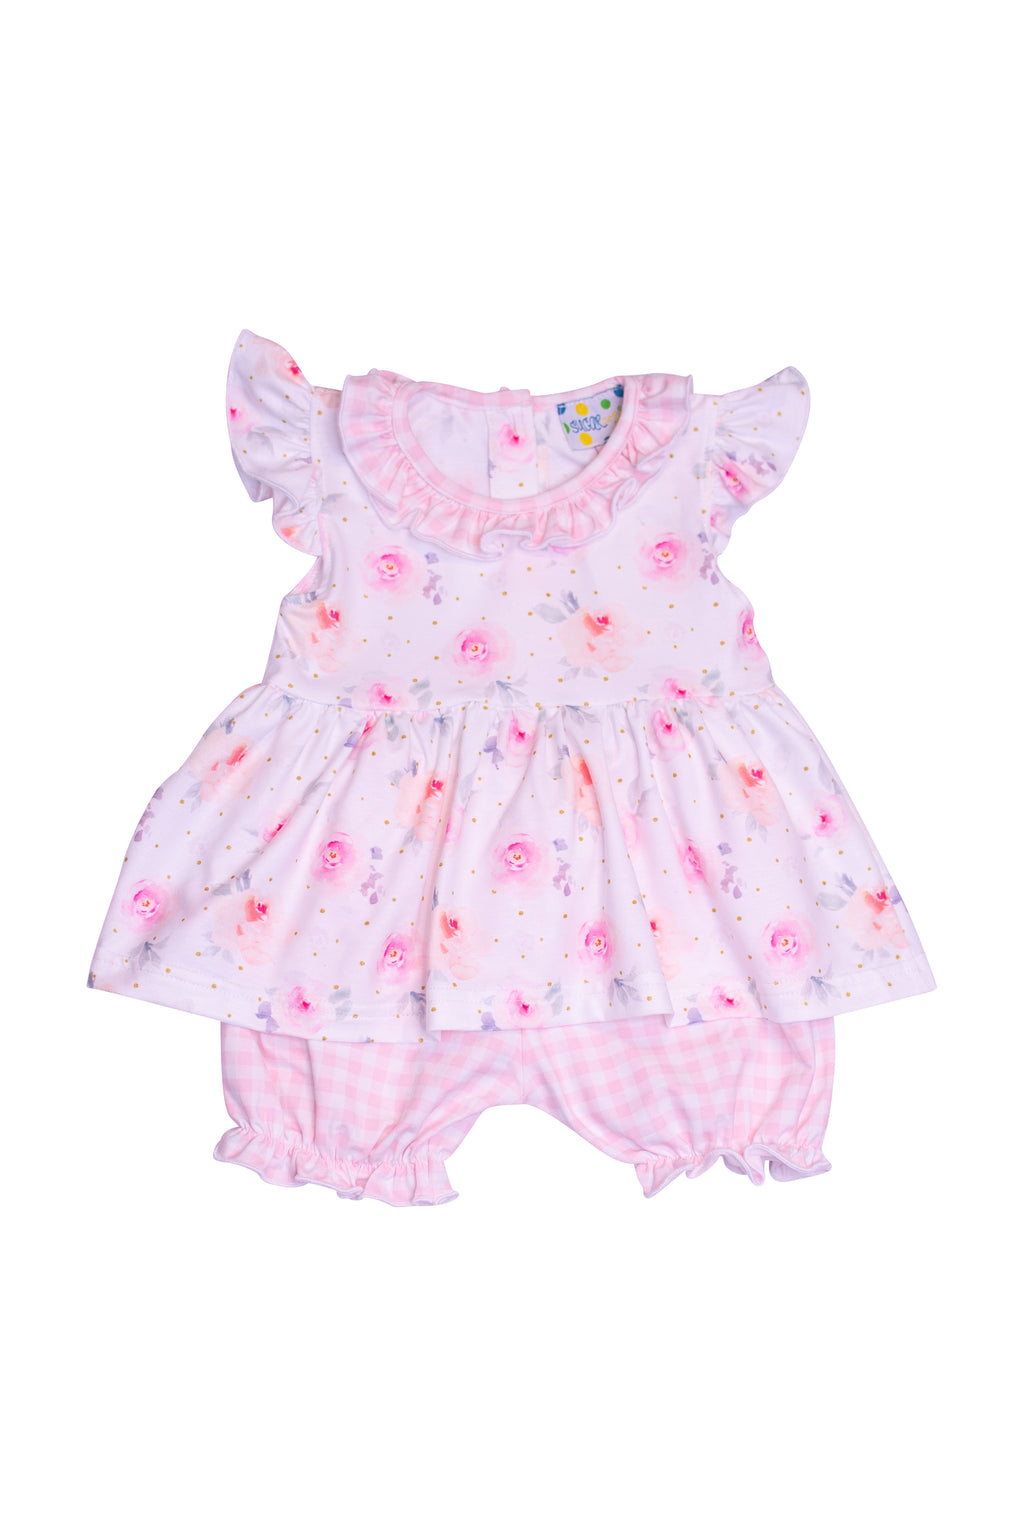 Girls Knit Floral/Check Bloomer Set